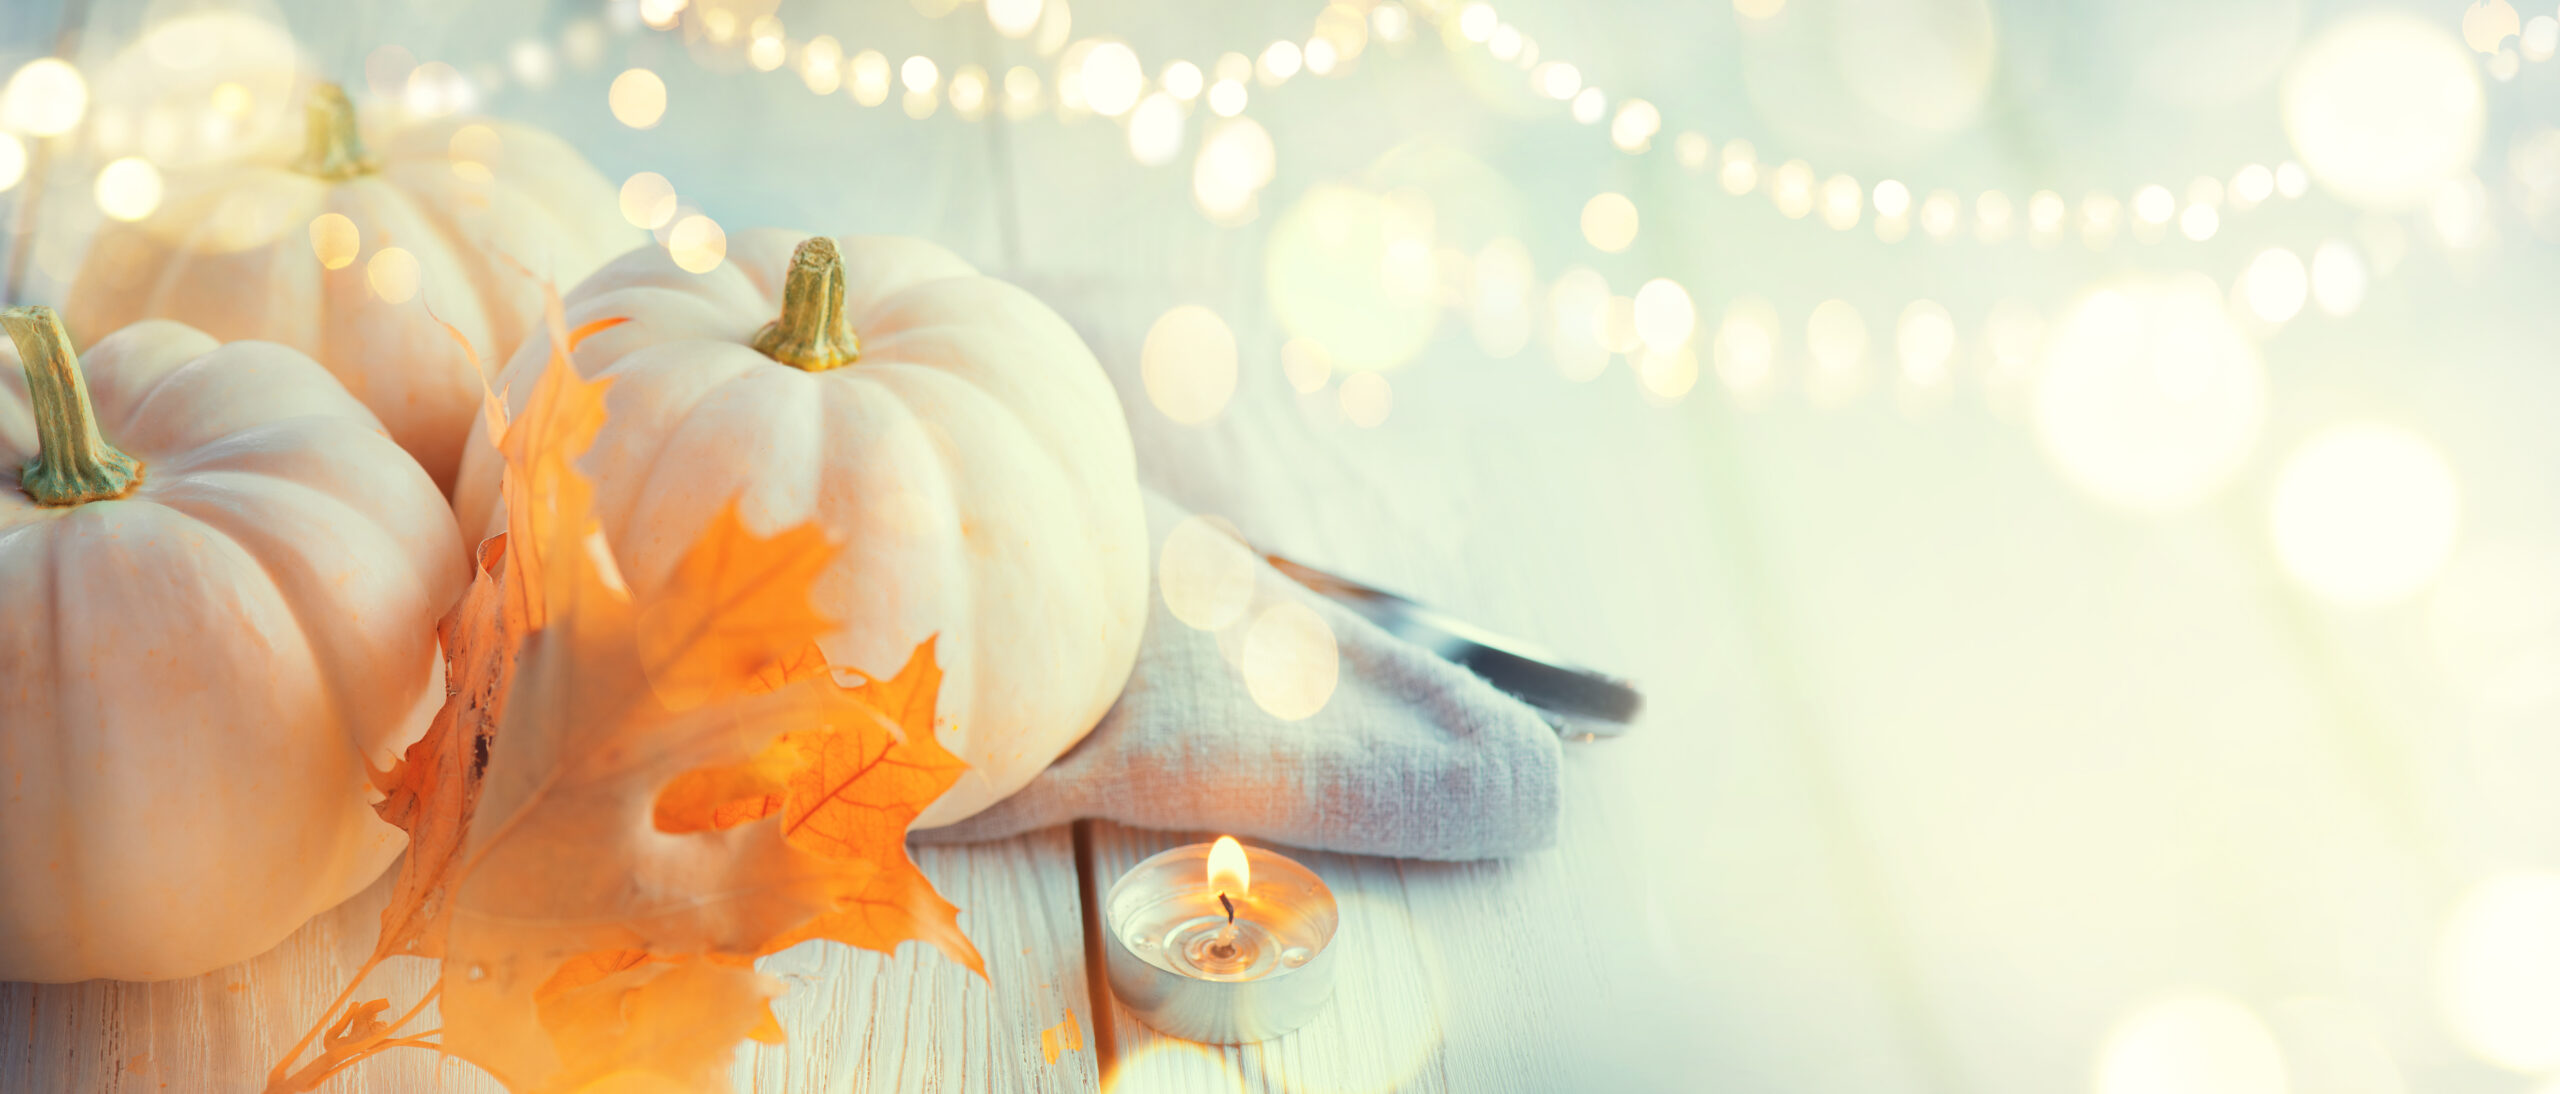 5 Tips to Make the Most of Thanksgiving 2020